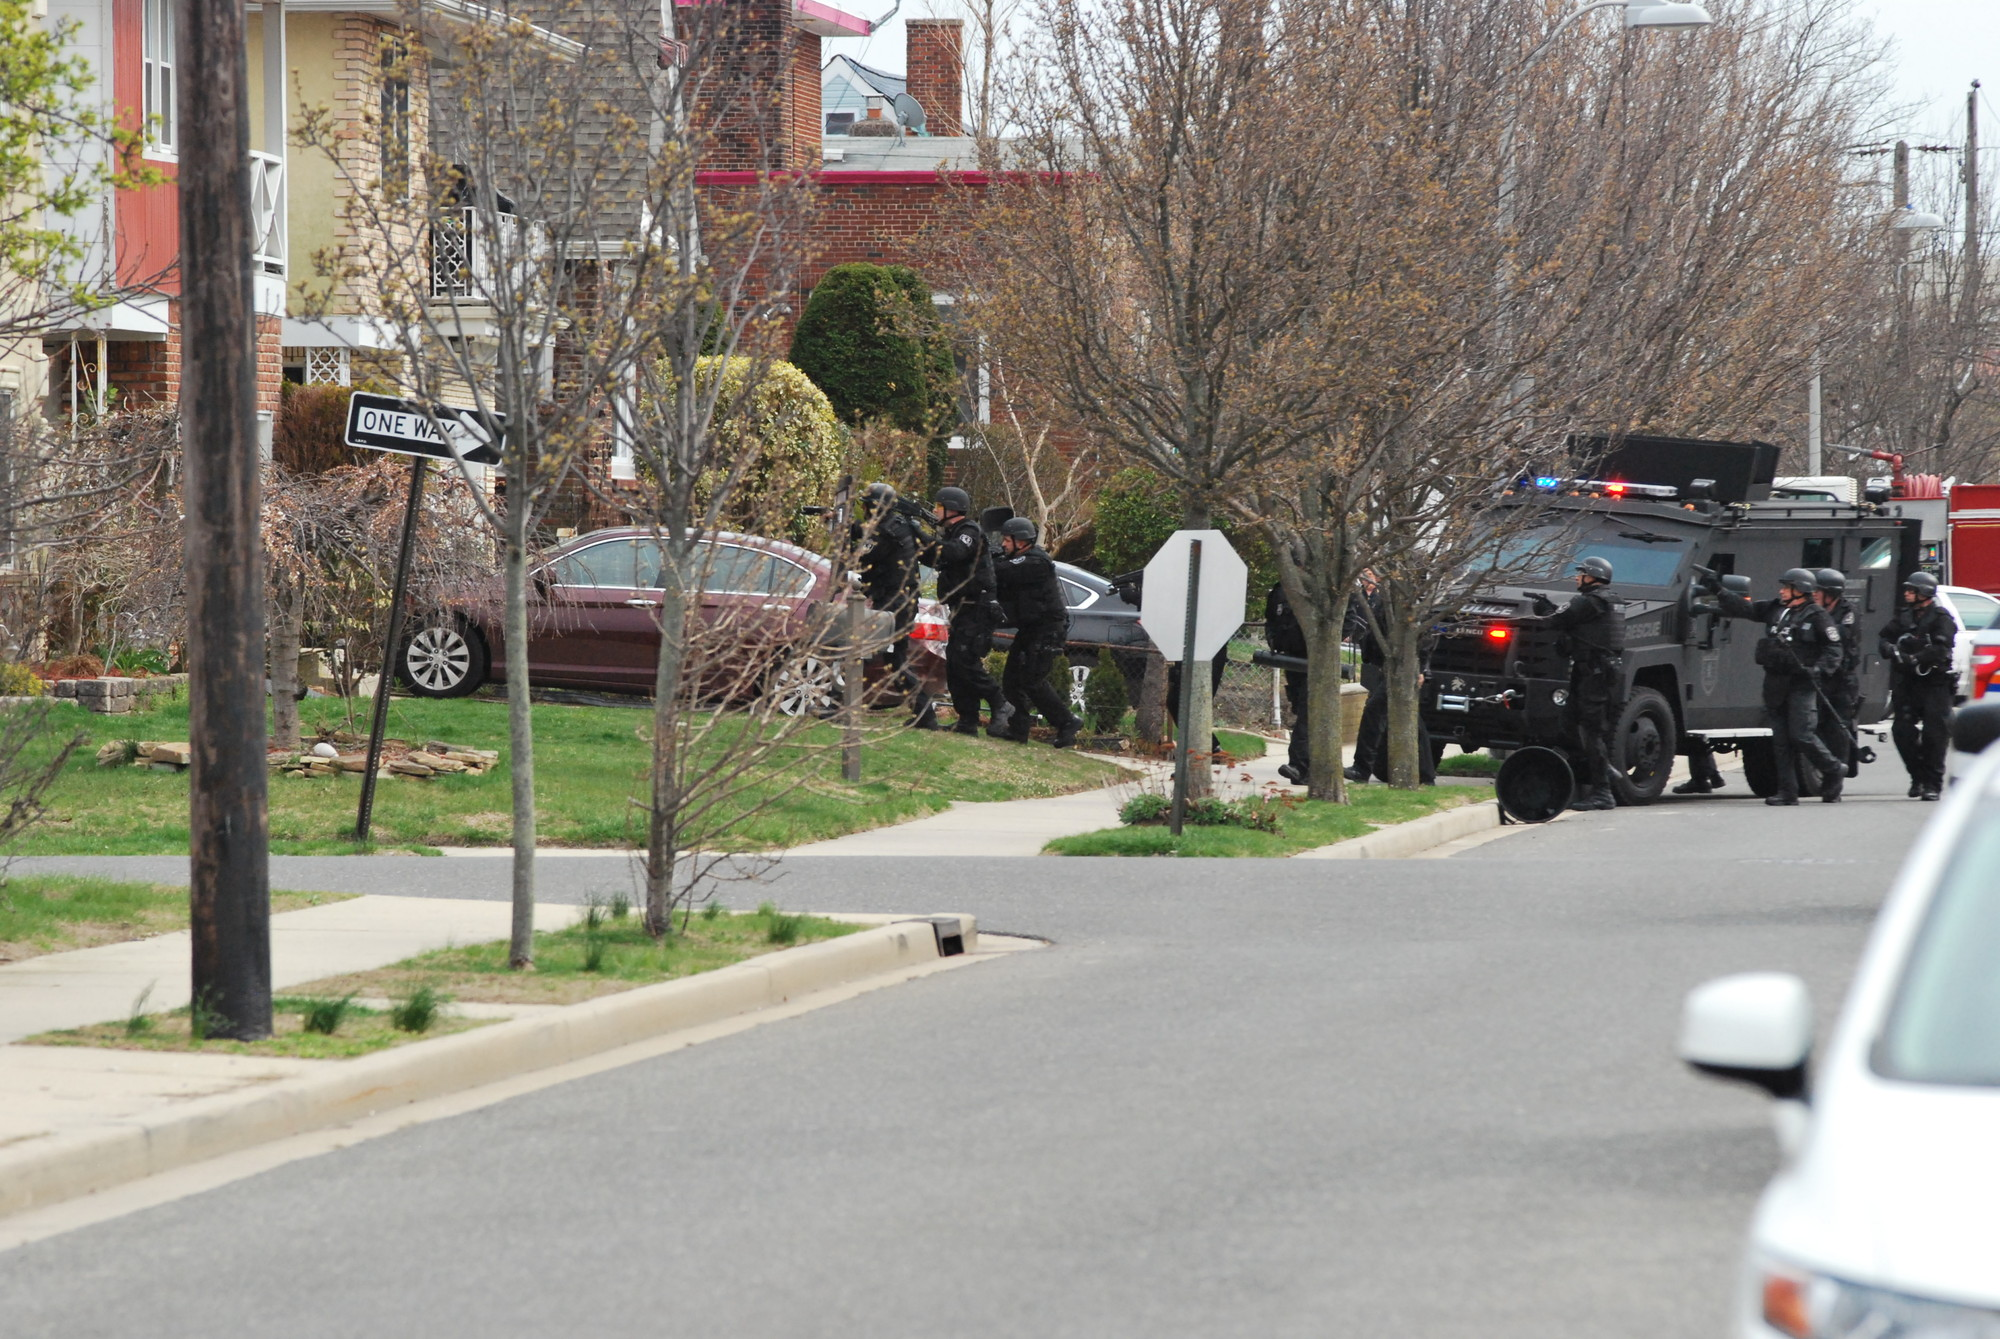 The SWAT team entered the home to conduct a search after the family was safely removed.